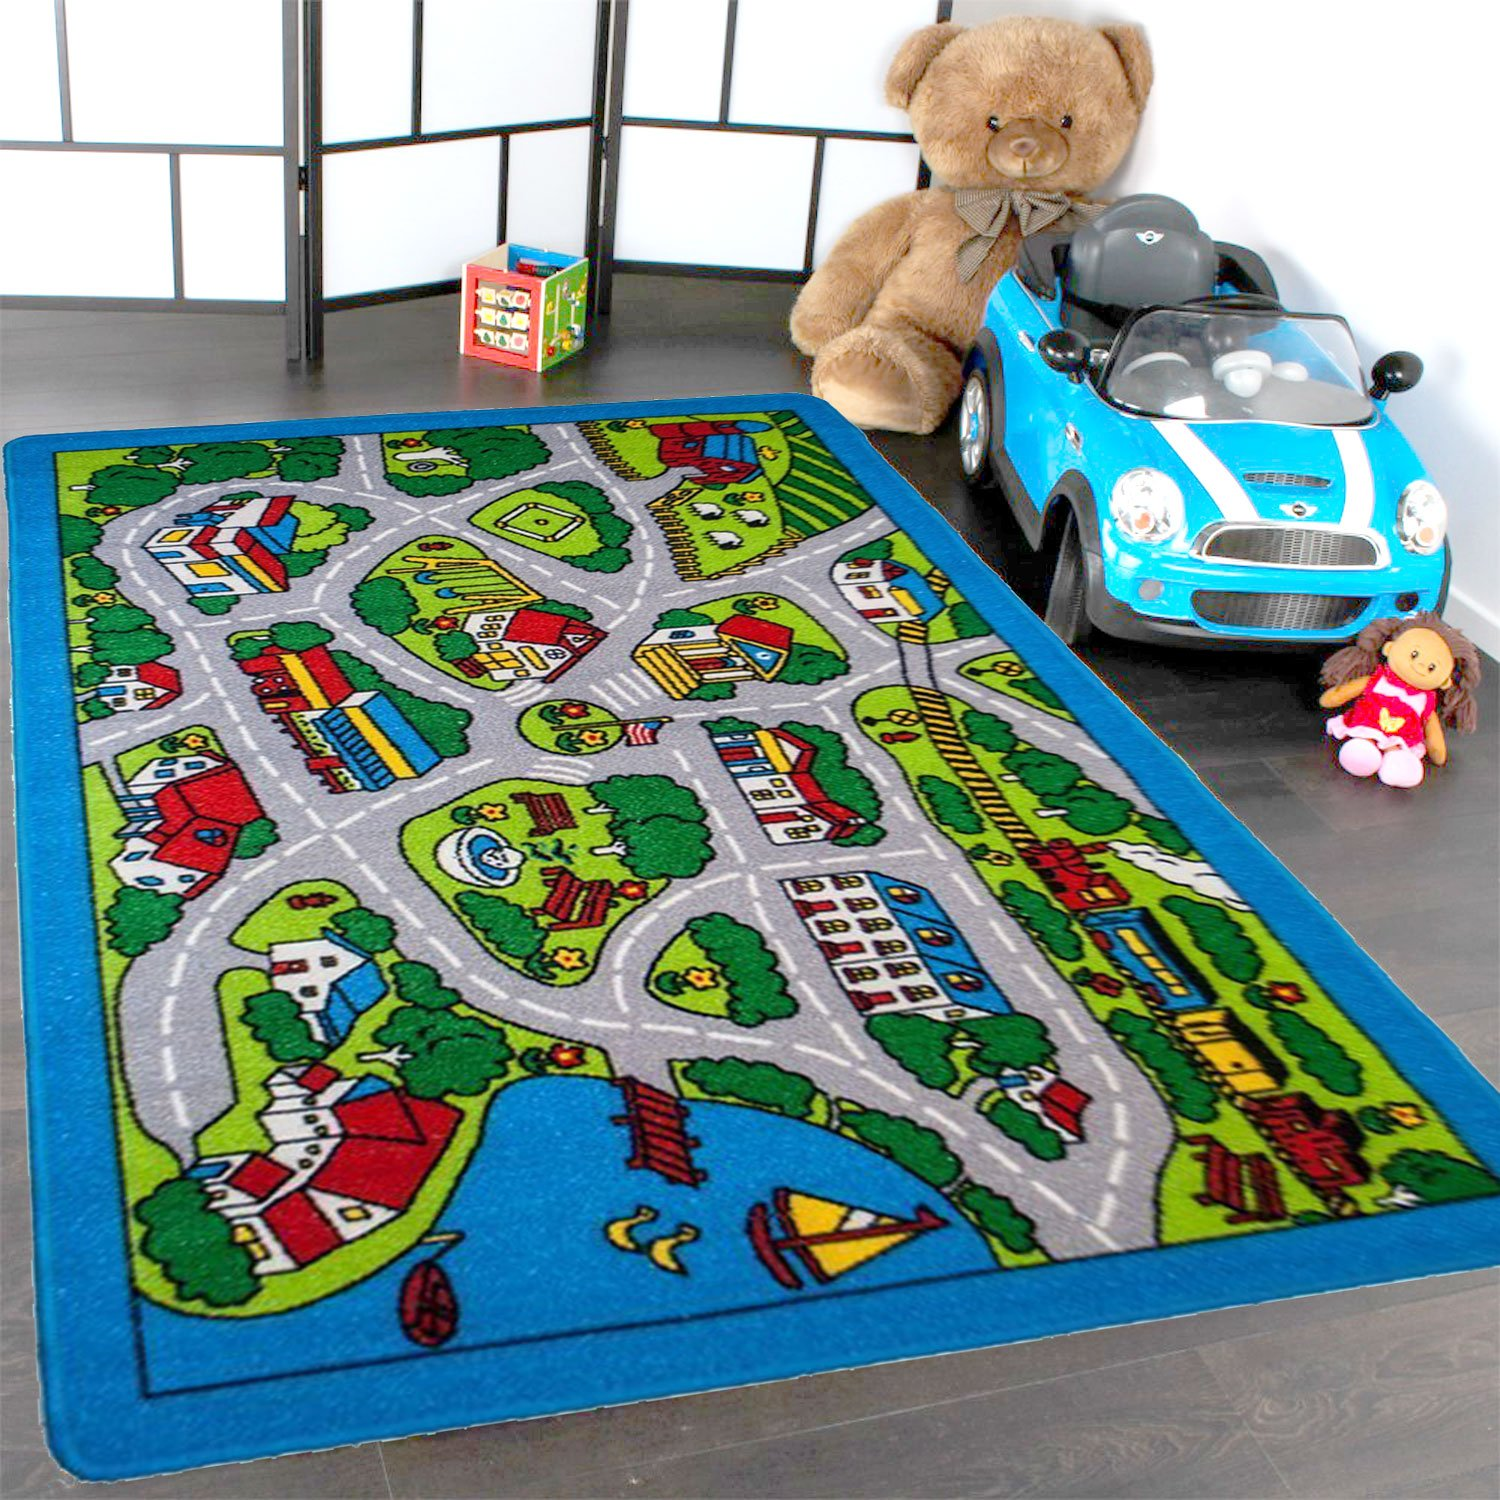 Kids Rugs Street Map in Grey 8' X 11' Childrens Area Rug - Non Skid Gel Backing (7'10'' X 11'3'')